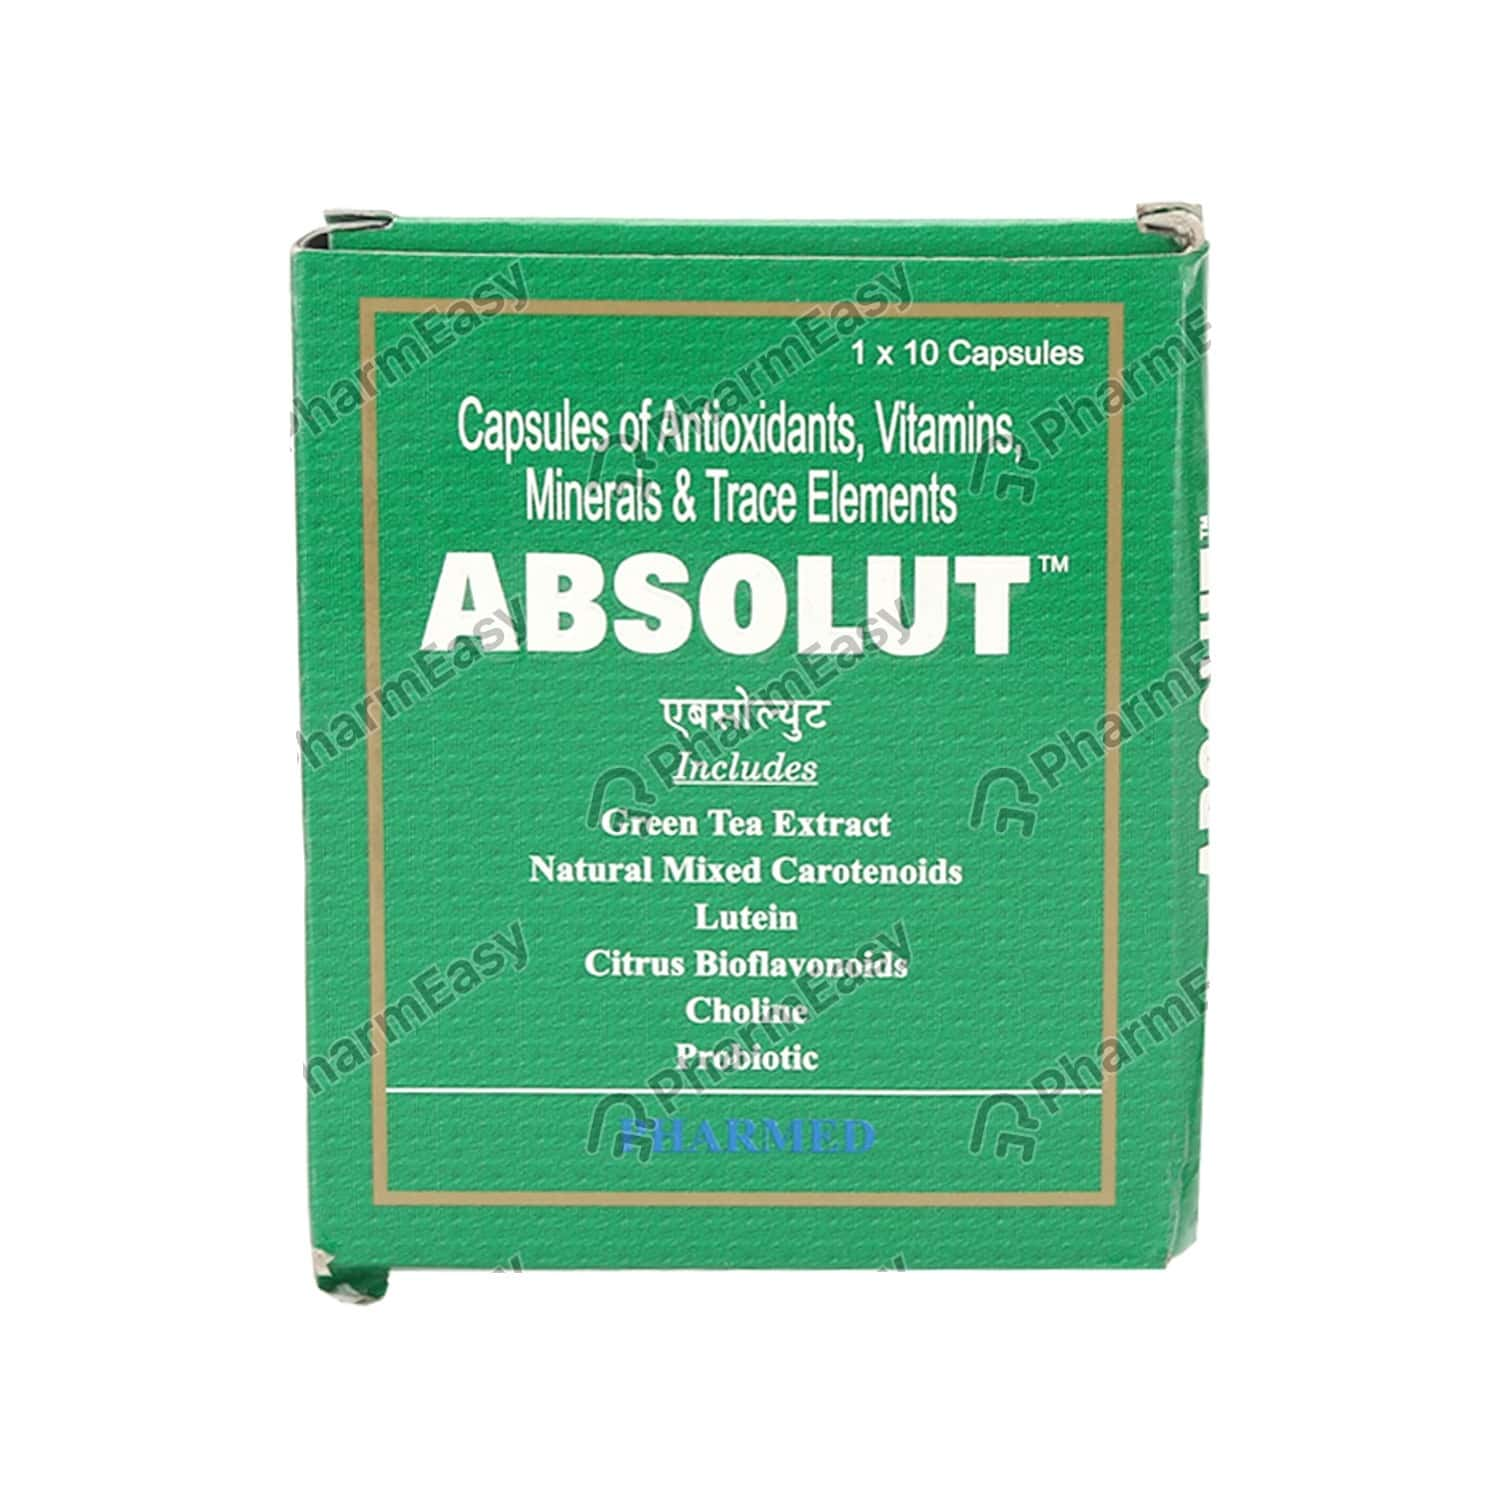 Absolut Strip Of 10 Capsules